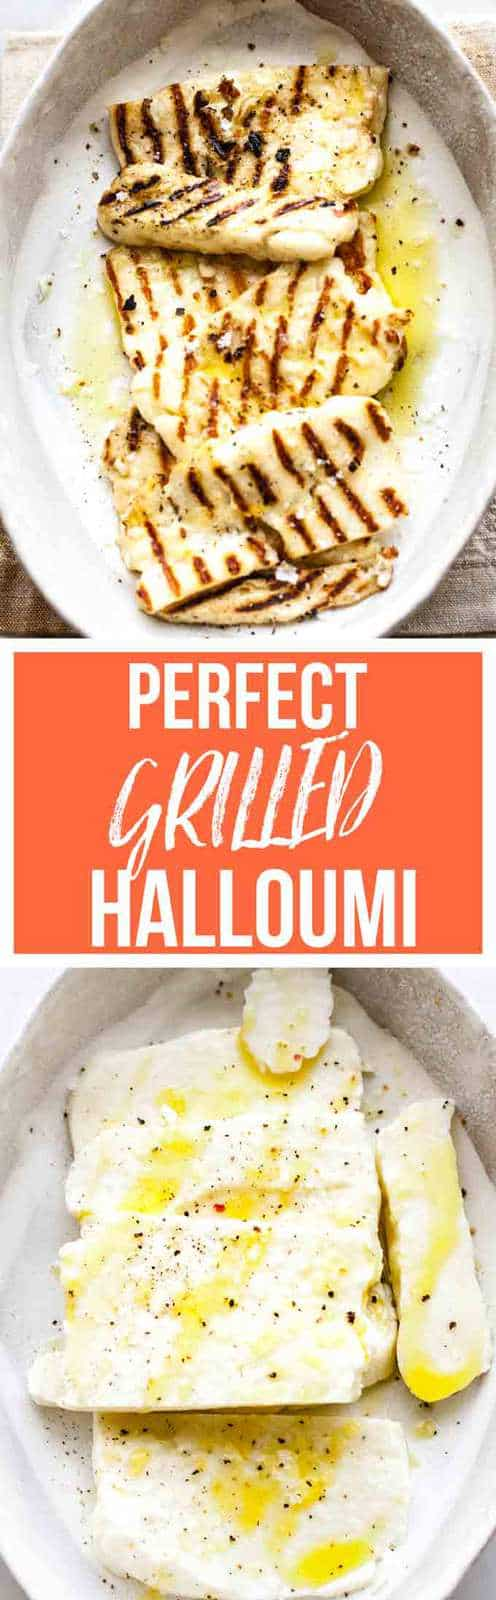 Grilled halloumi is a perfect meal helper. It's packed with protein, is low in fat is delicious with those grill marks of flavour. #vegetarian #halloumi #cleaneating #cheese